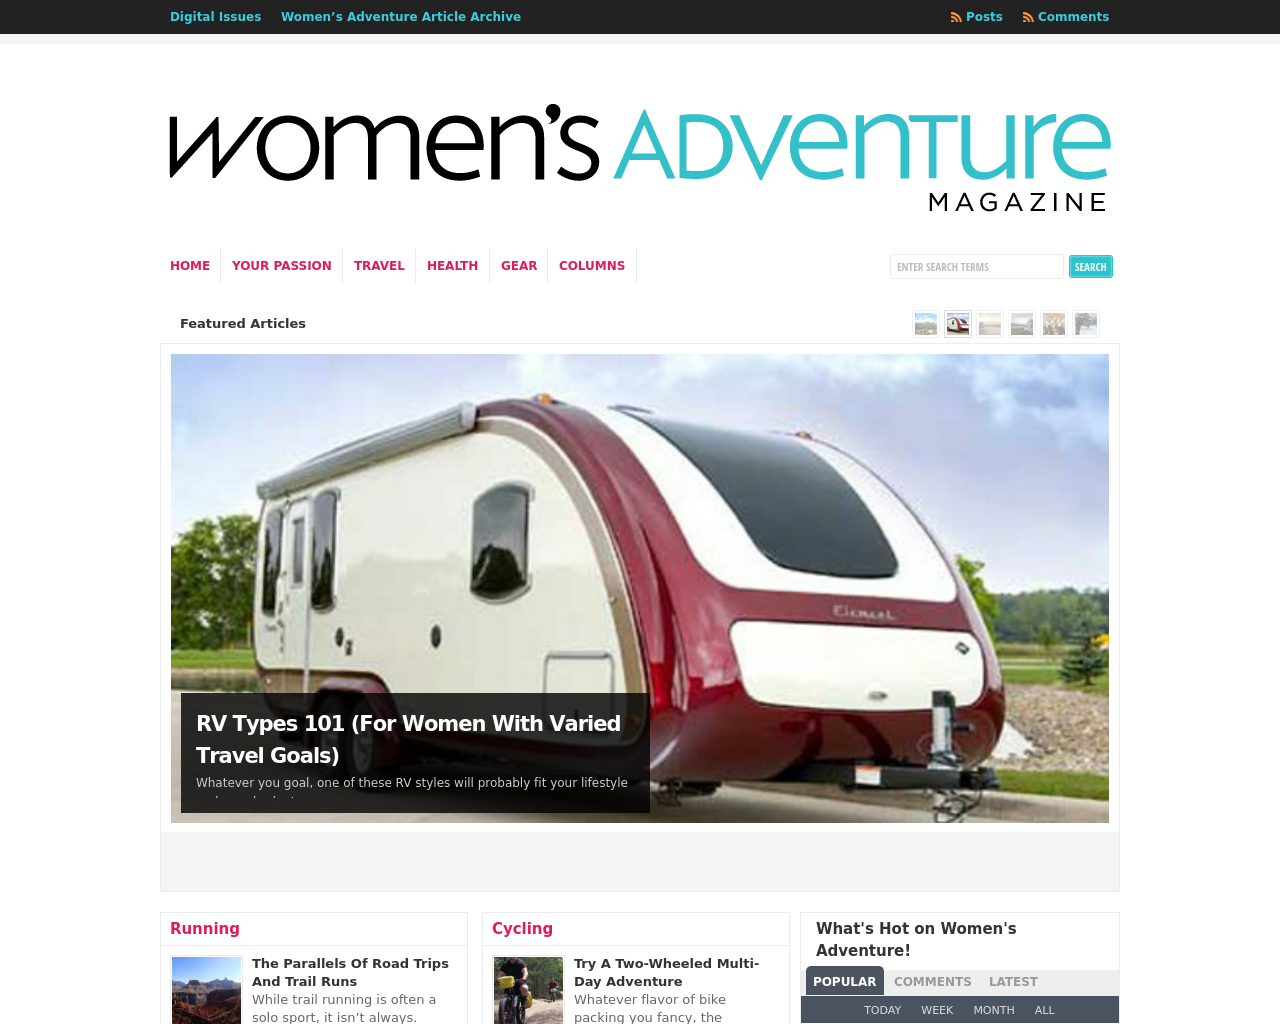 Women's-Adventure-Magazine-Advertising-Reviews-Pricing